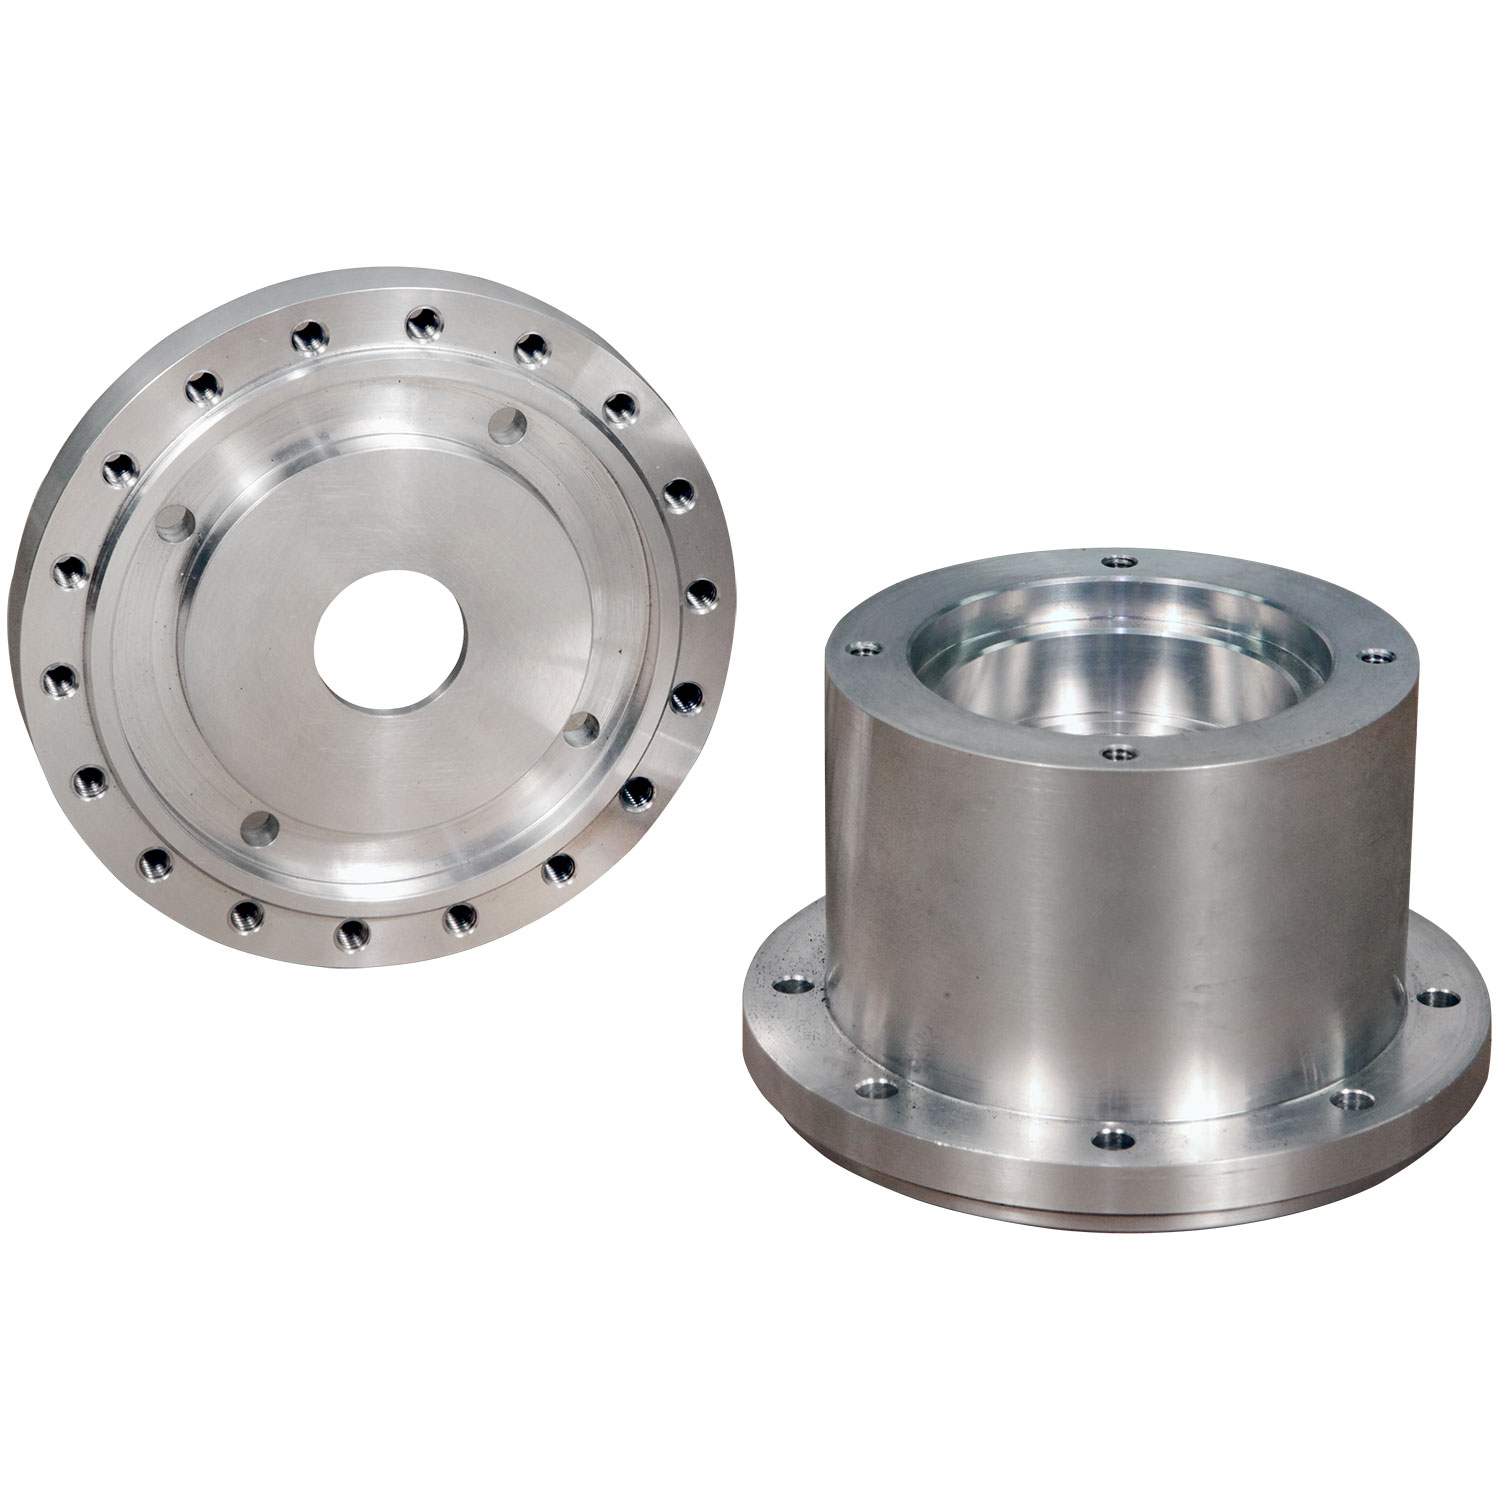 Aluminum Housing